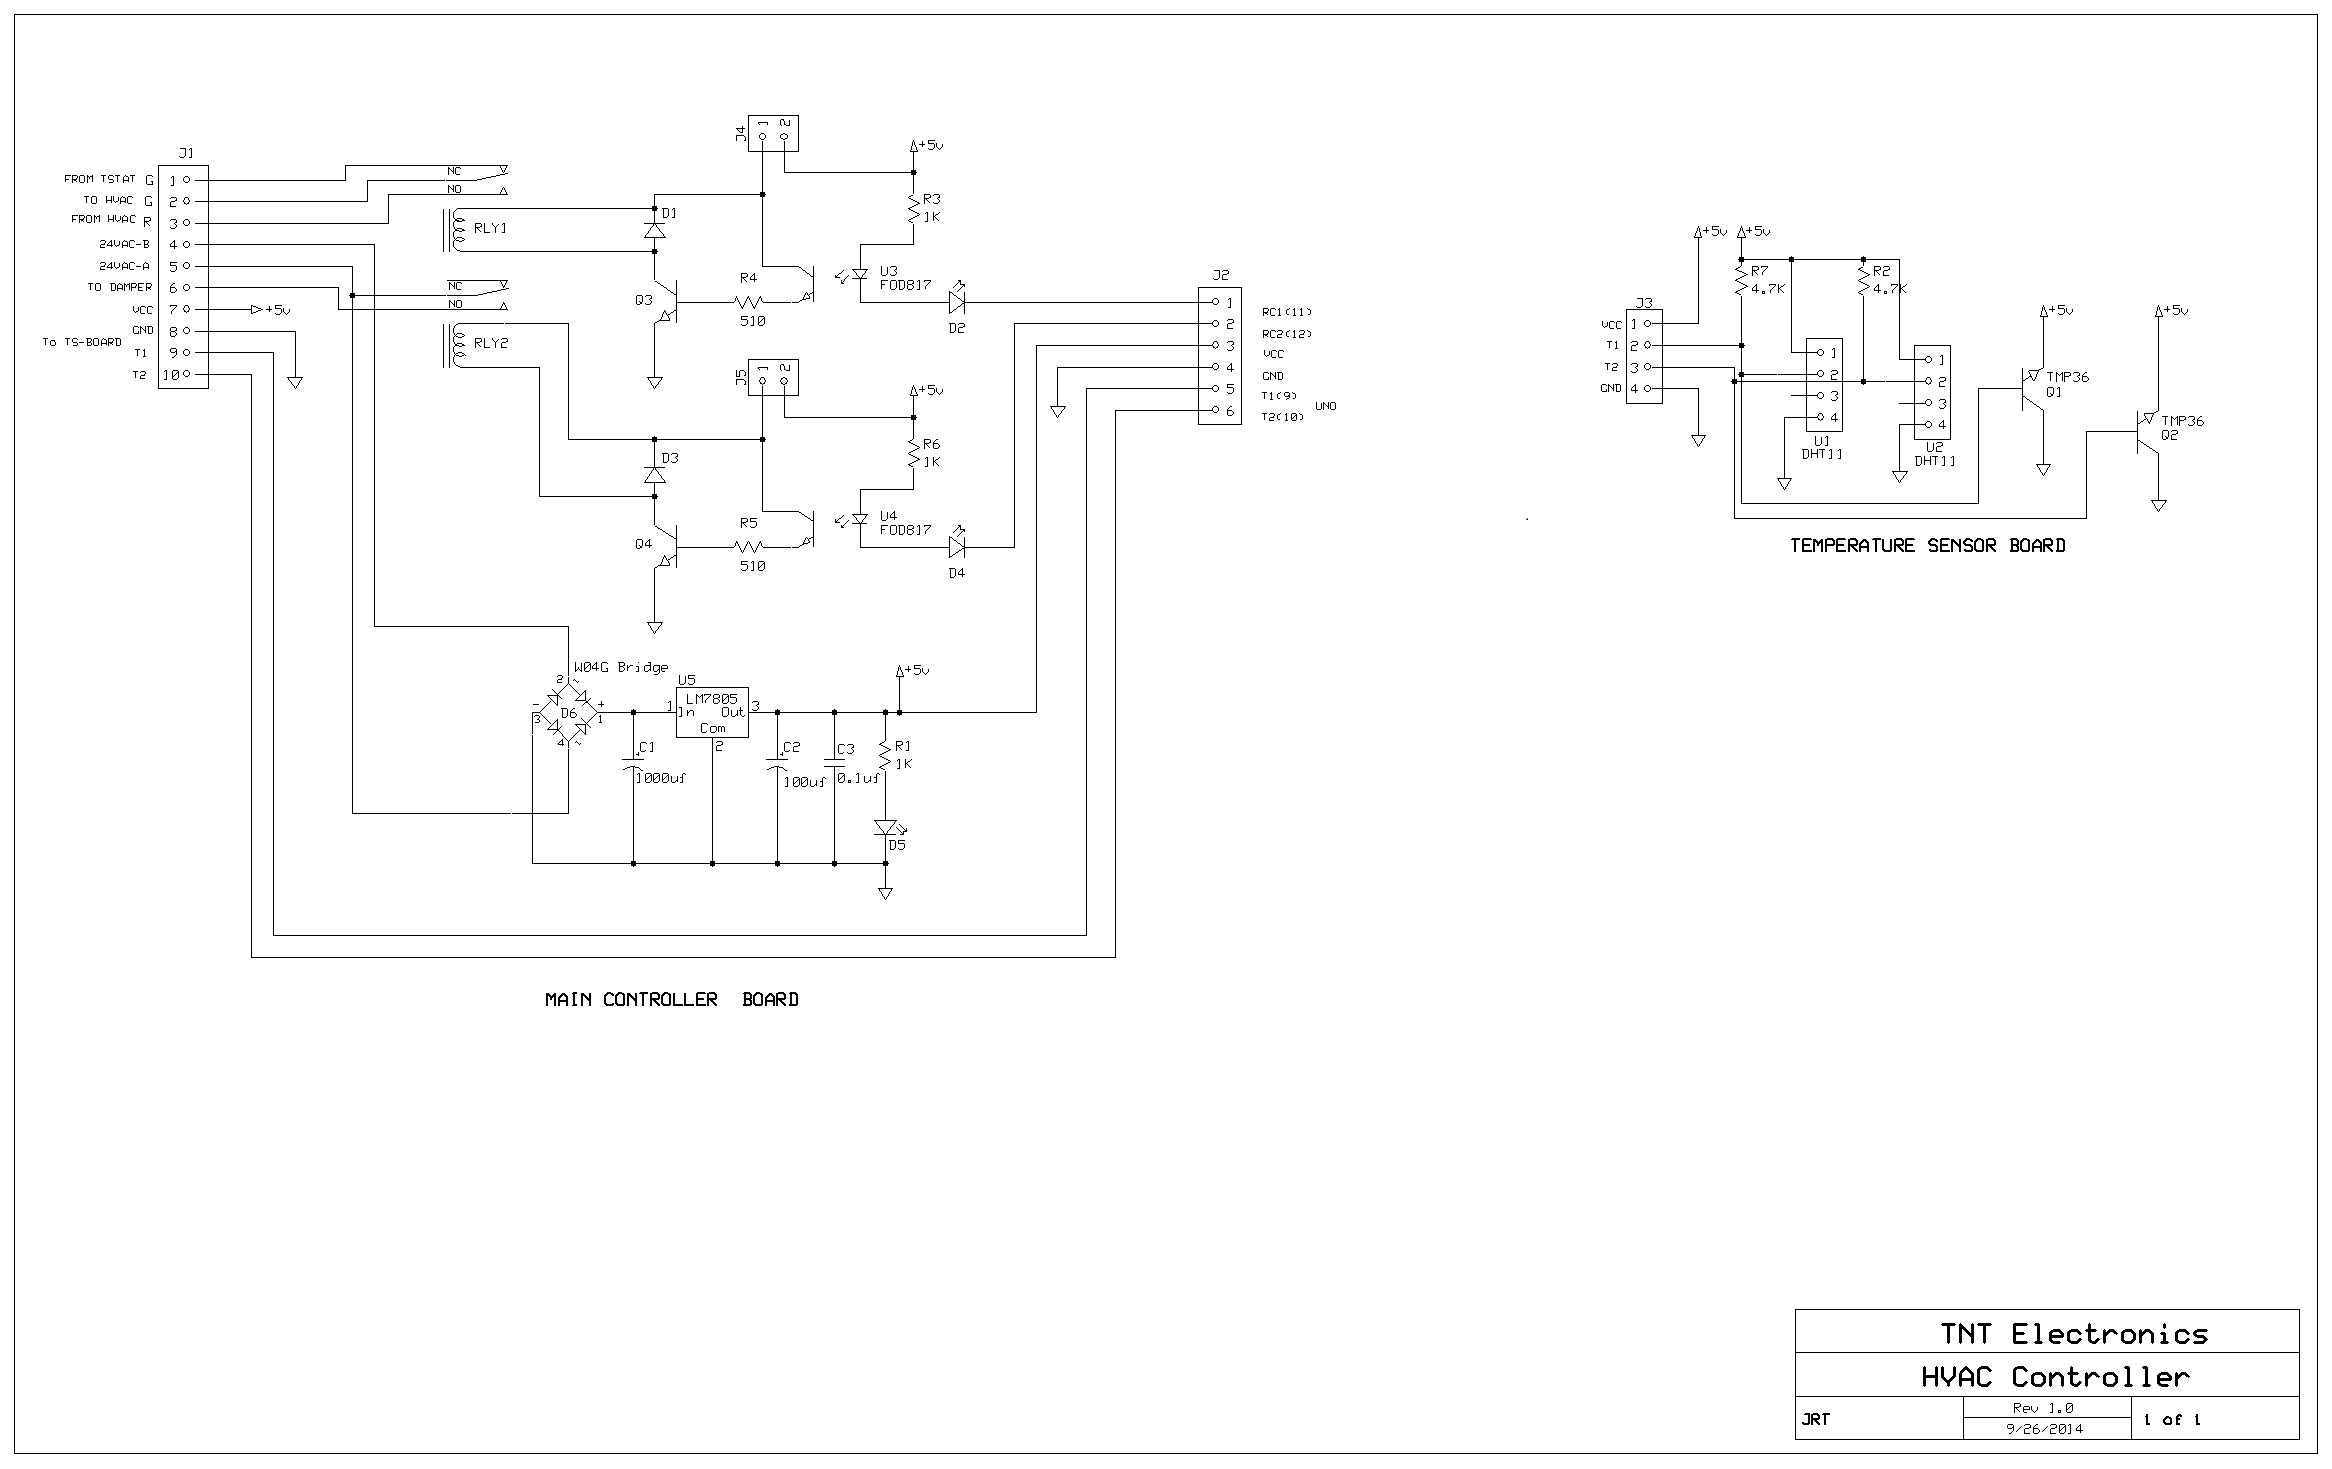 Fresh Air 10 Control Logic Diagram Hvac Build Instructions